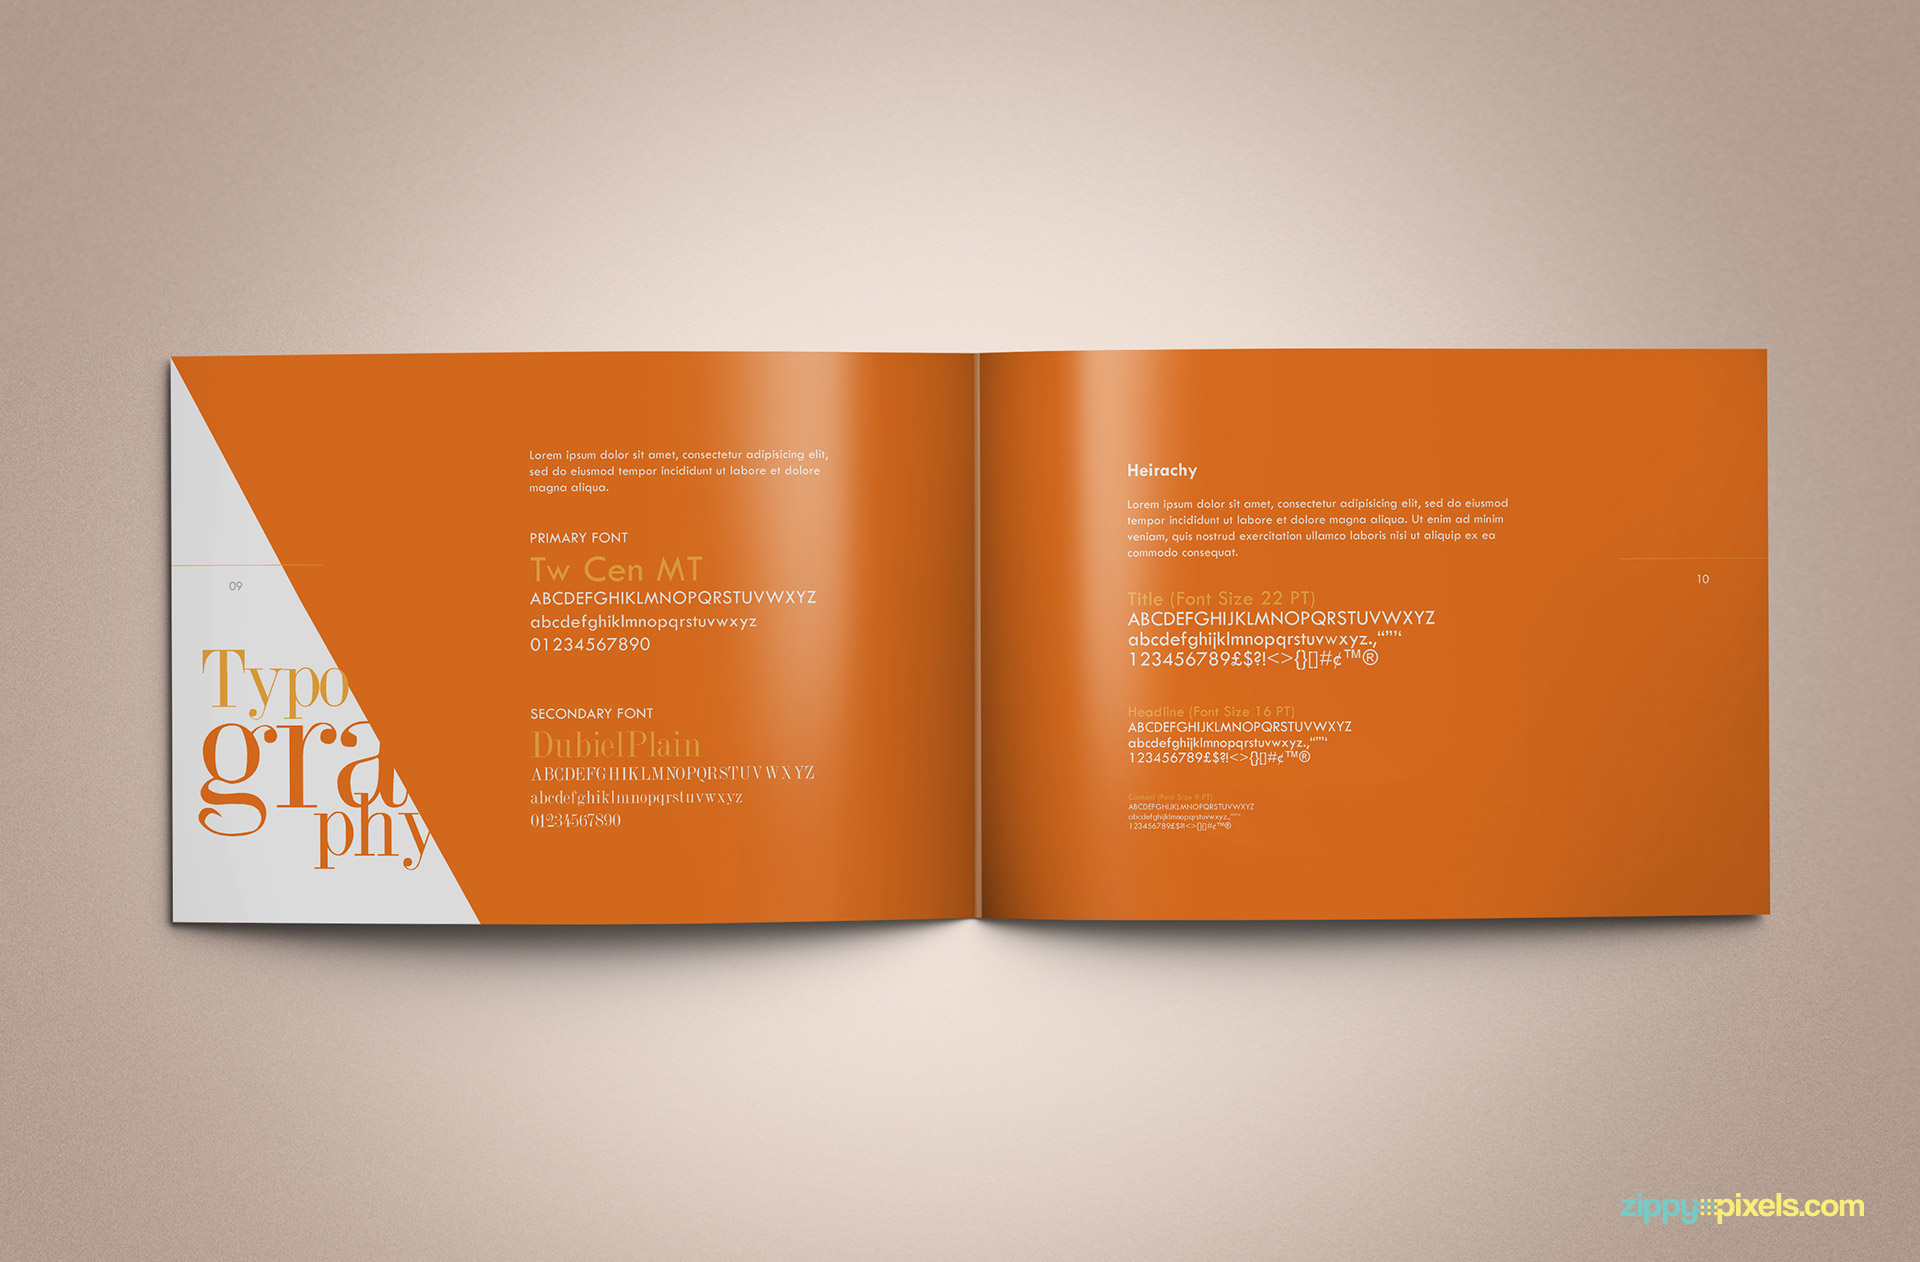 08-brand-book-4-typography